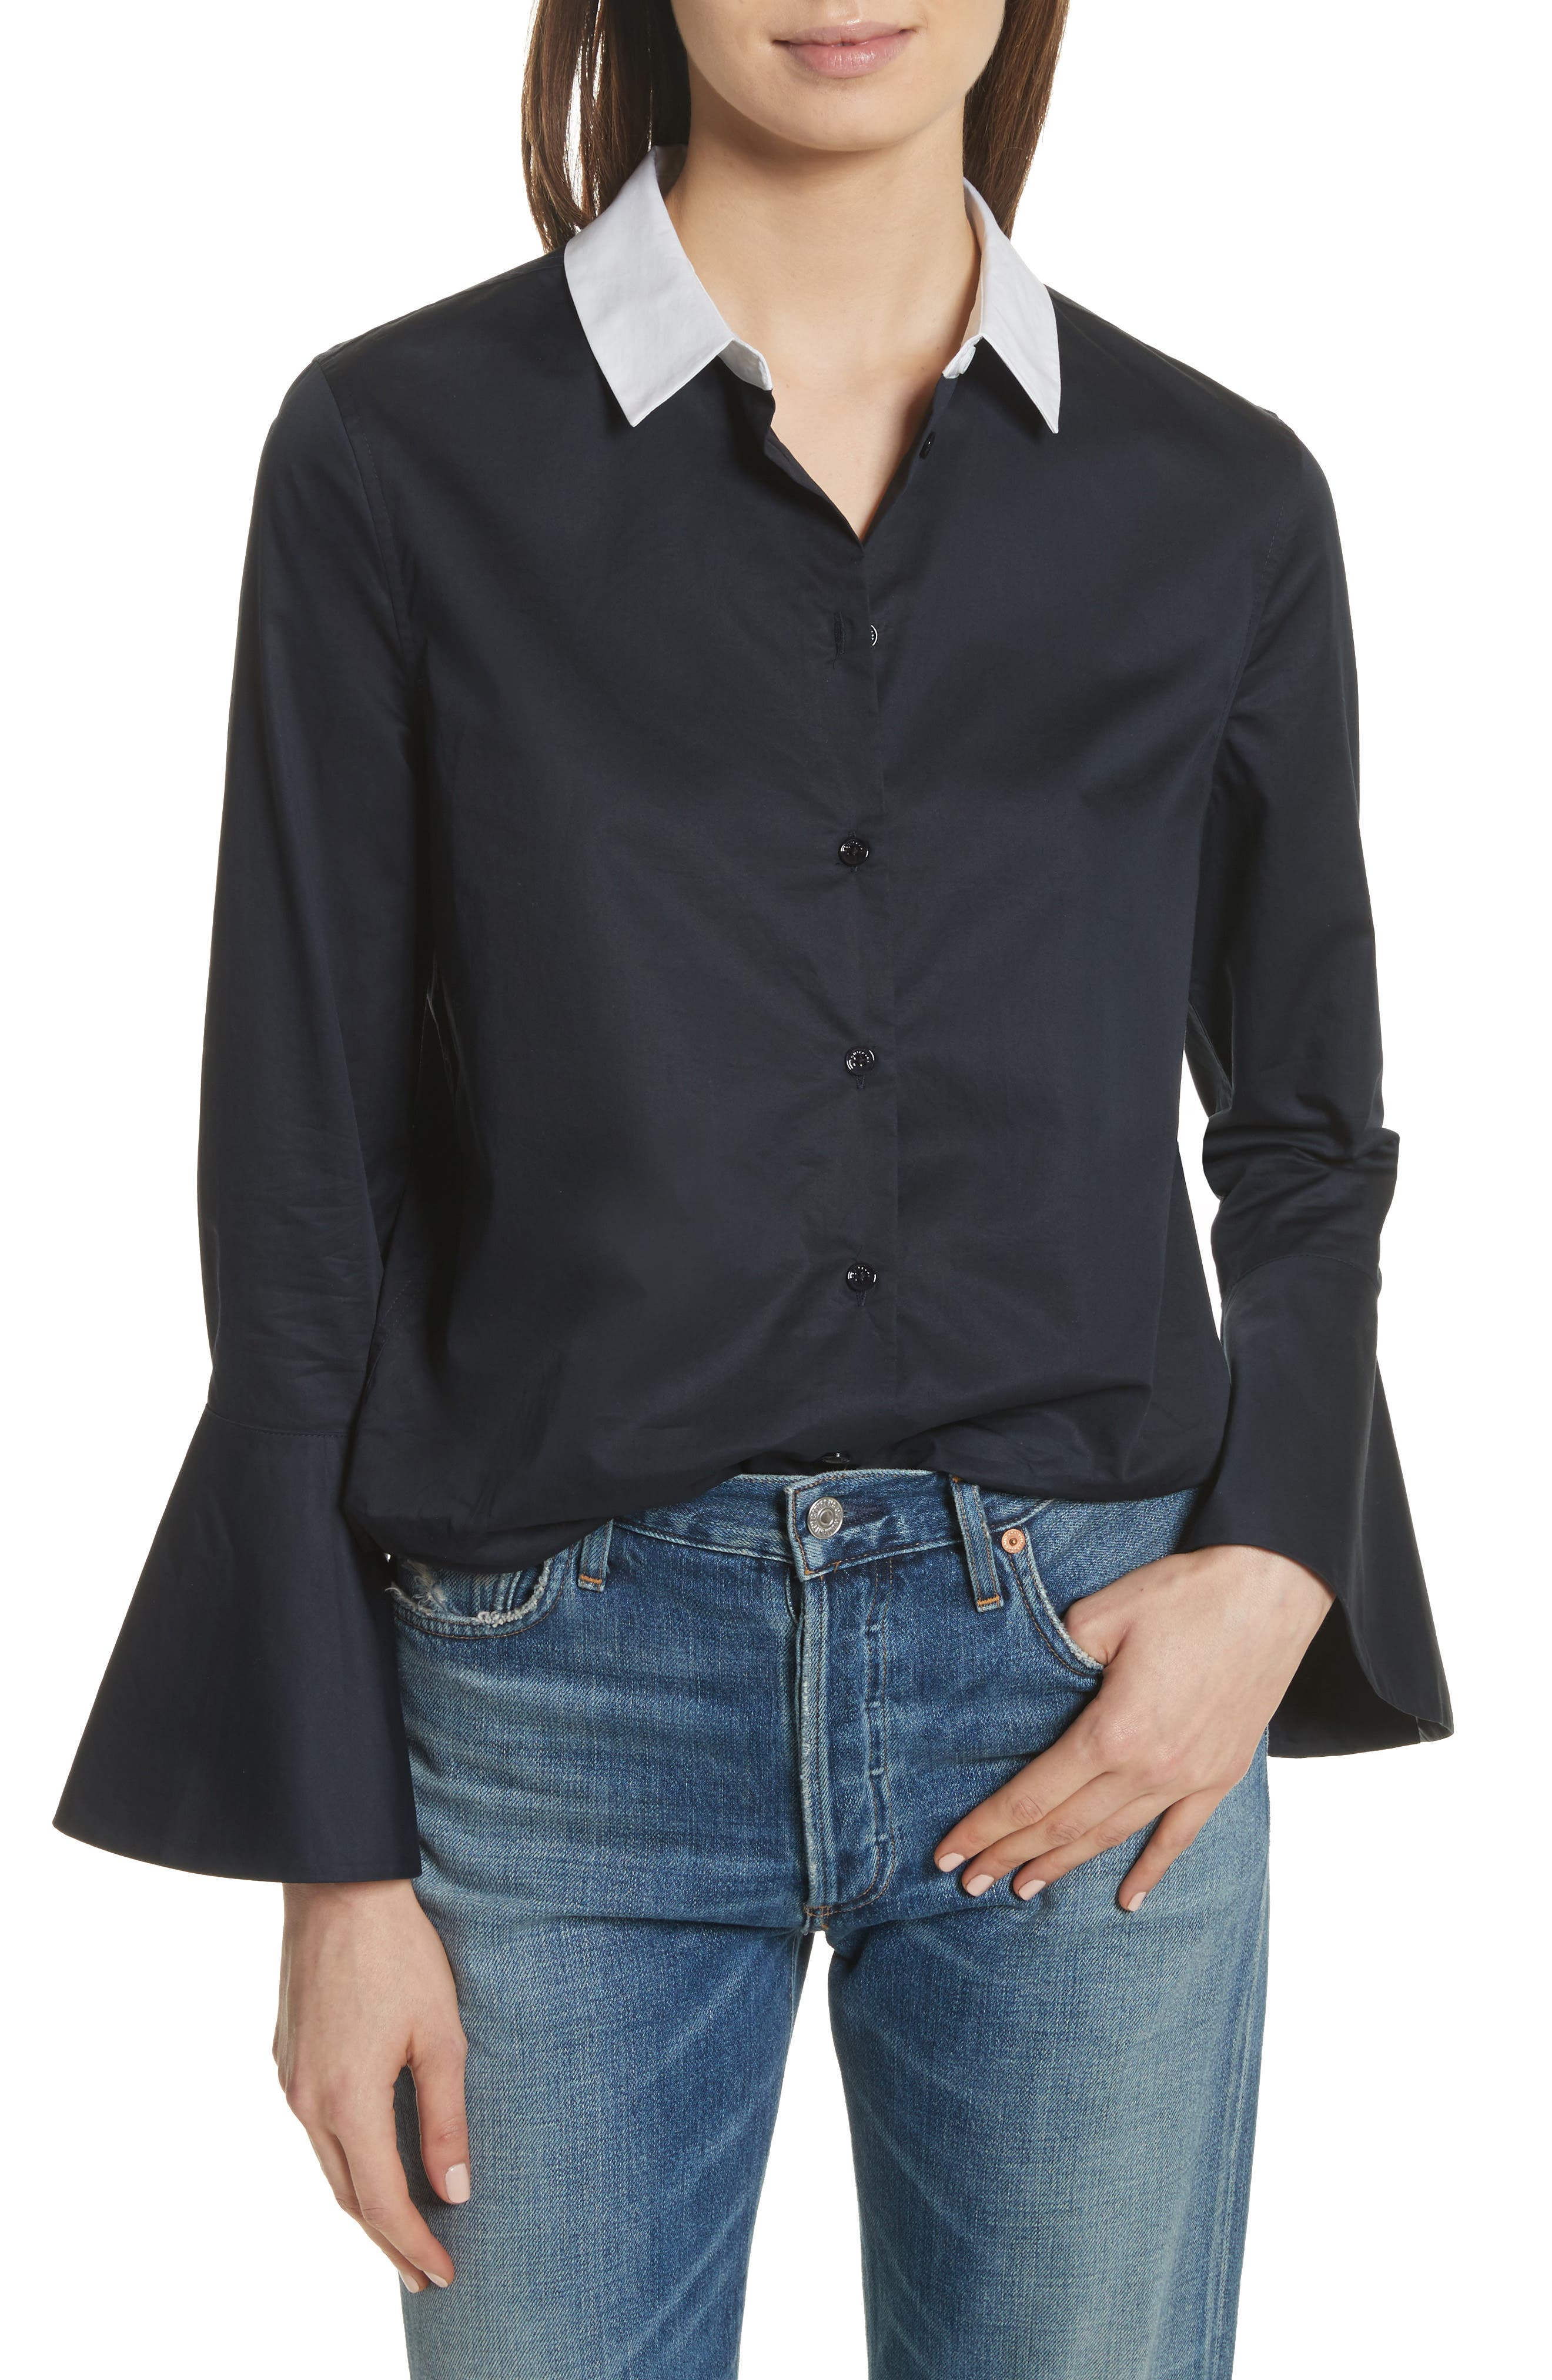 Main Image - Equipment Darla Bell Cuff Shirt